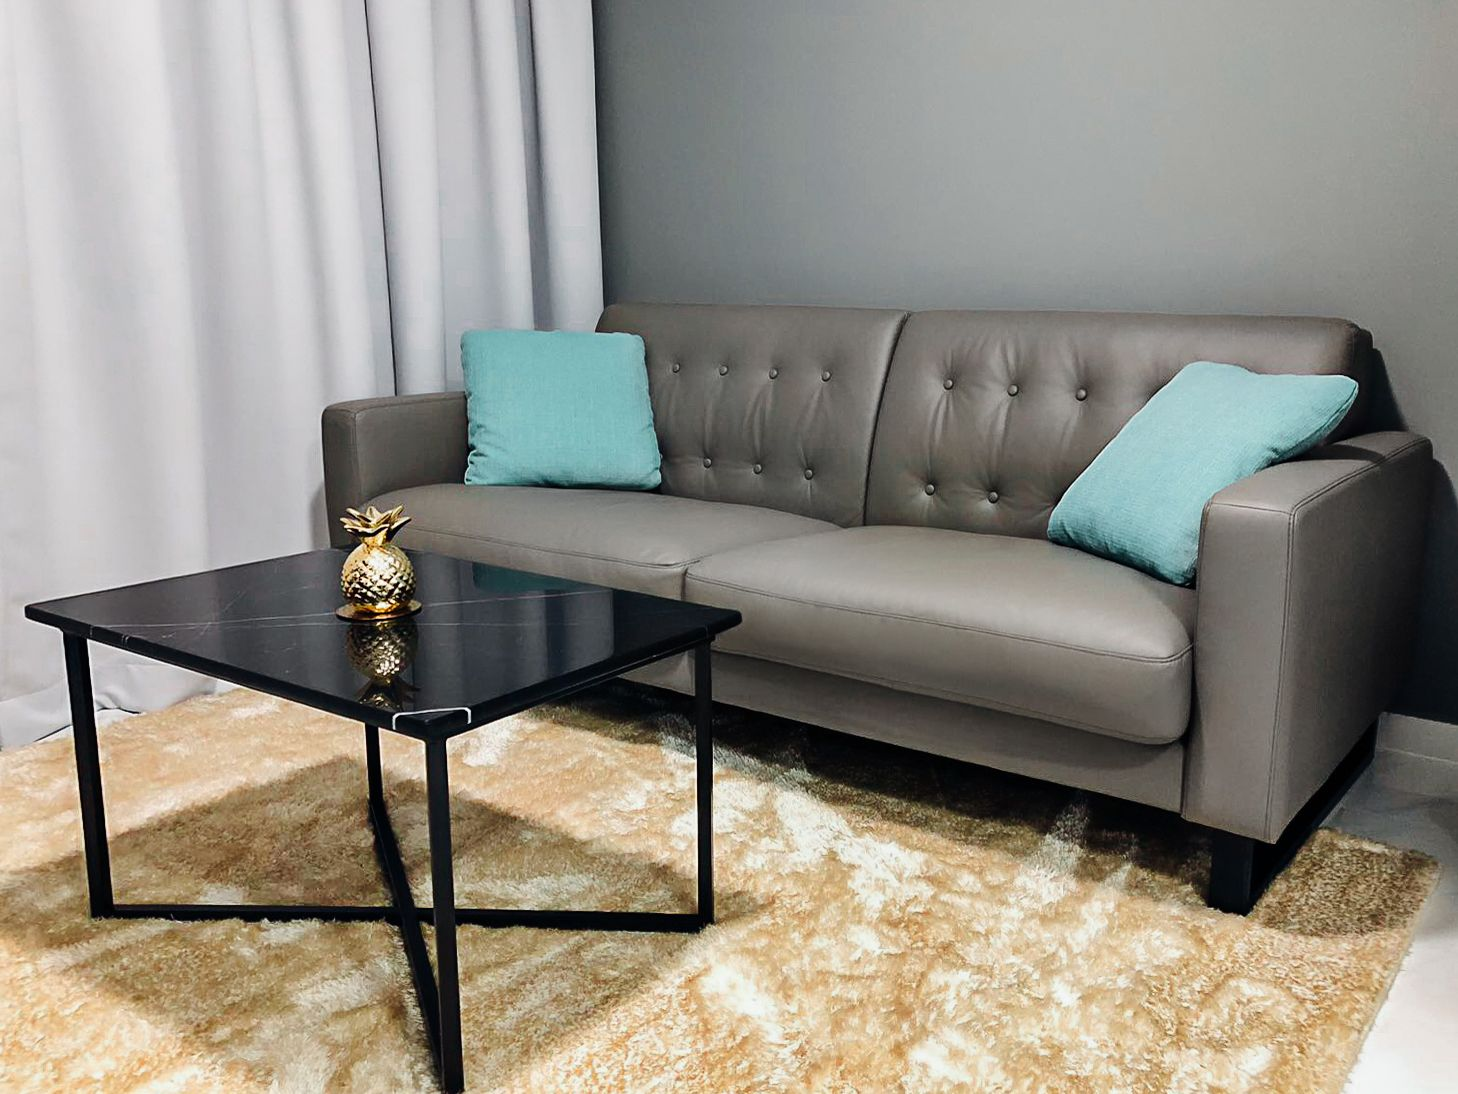 Pin By Greyhammer On Greyhammer Client Photos Coffee Table Home Decor Fine Furniture